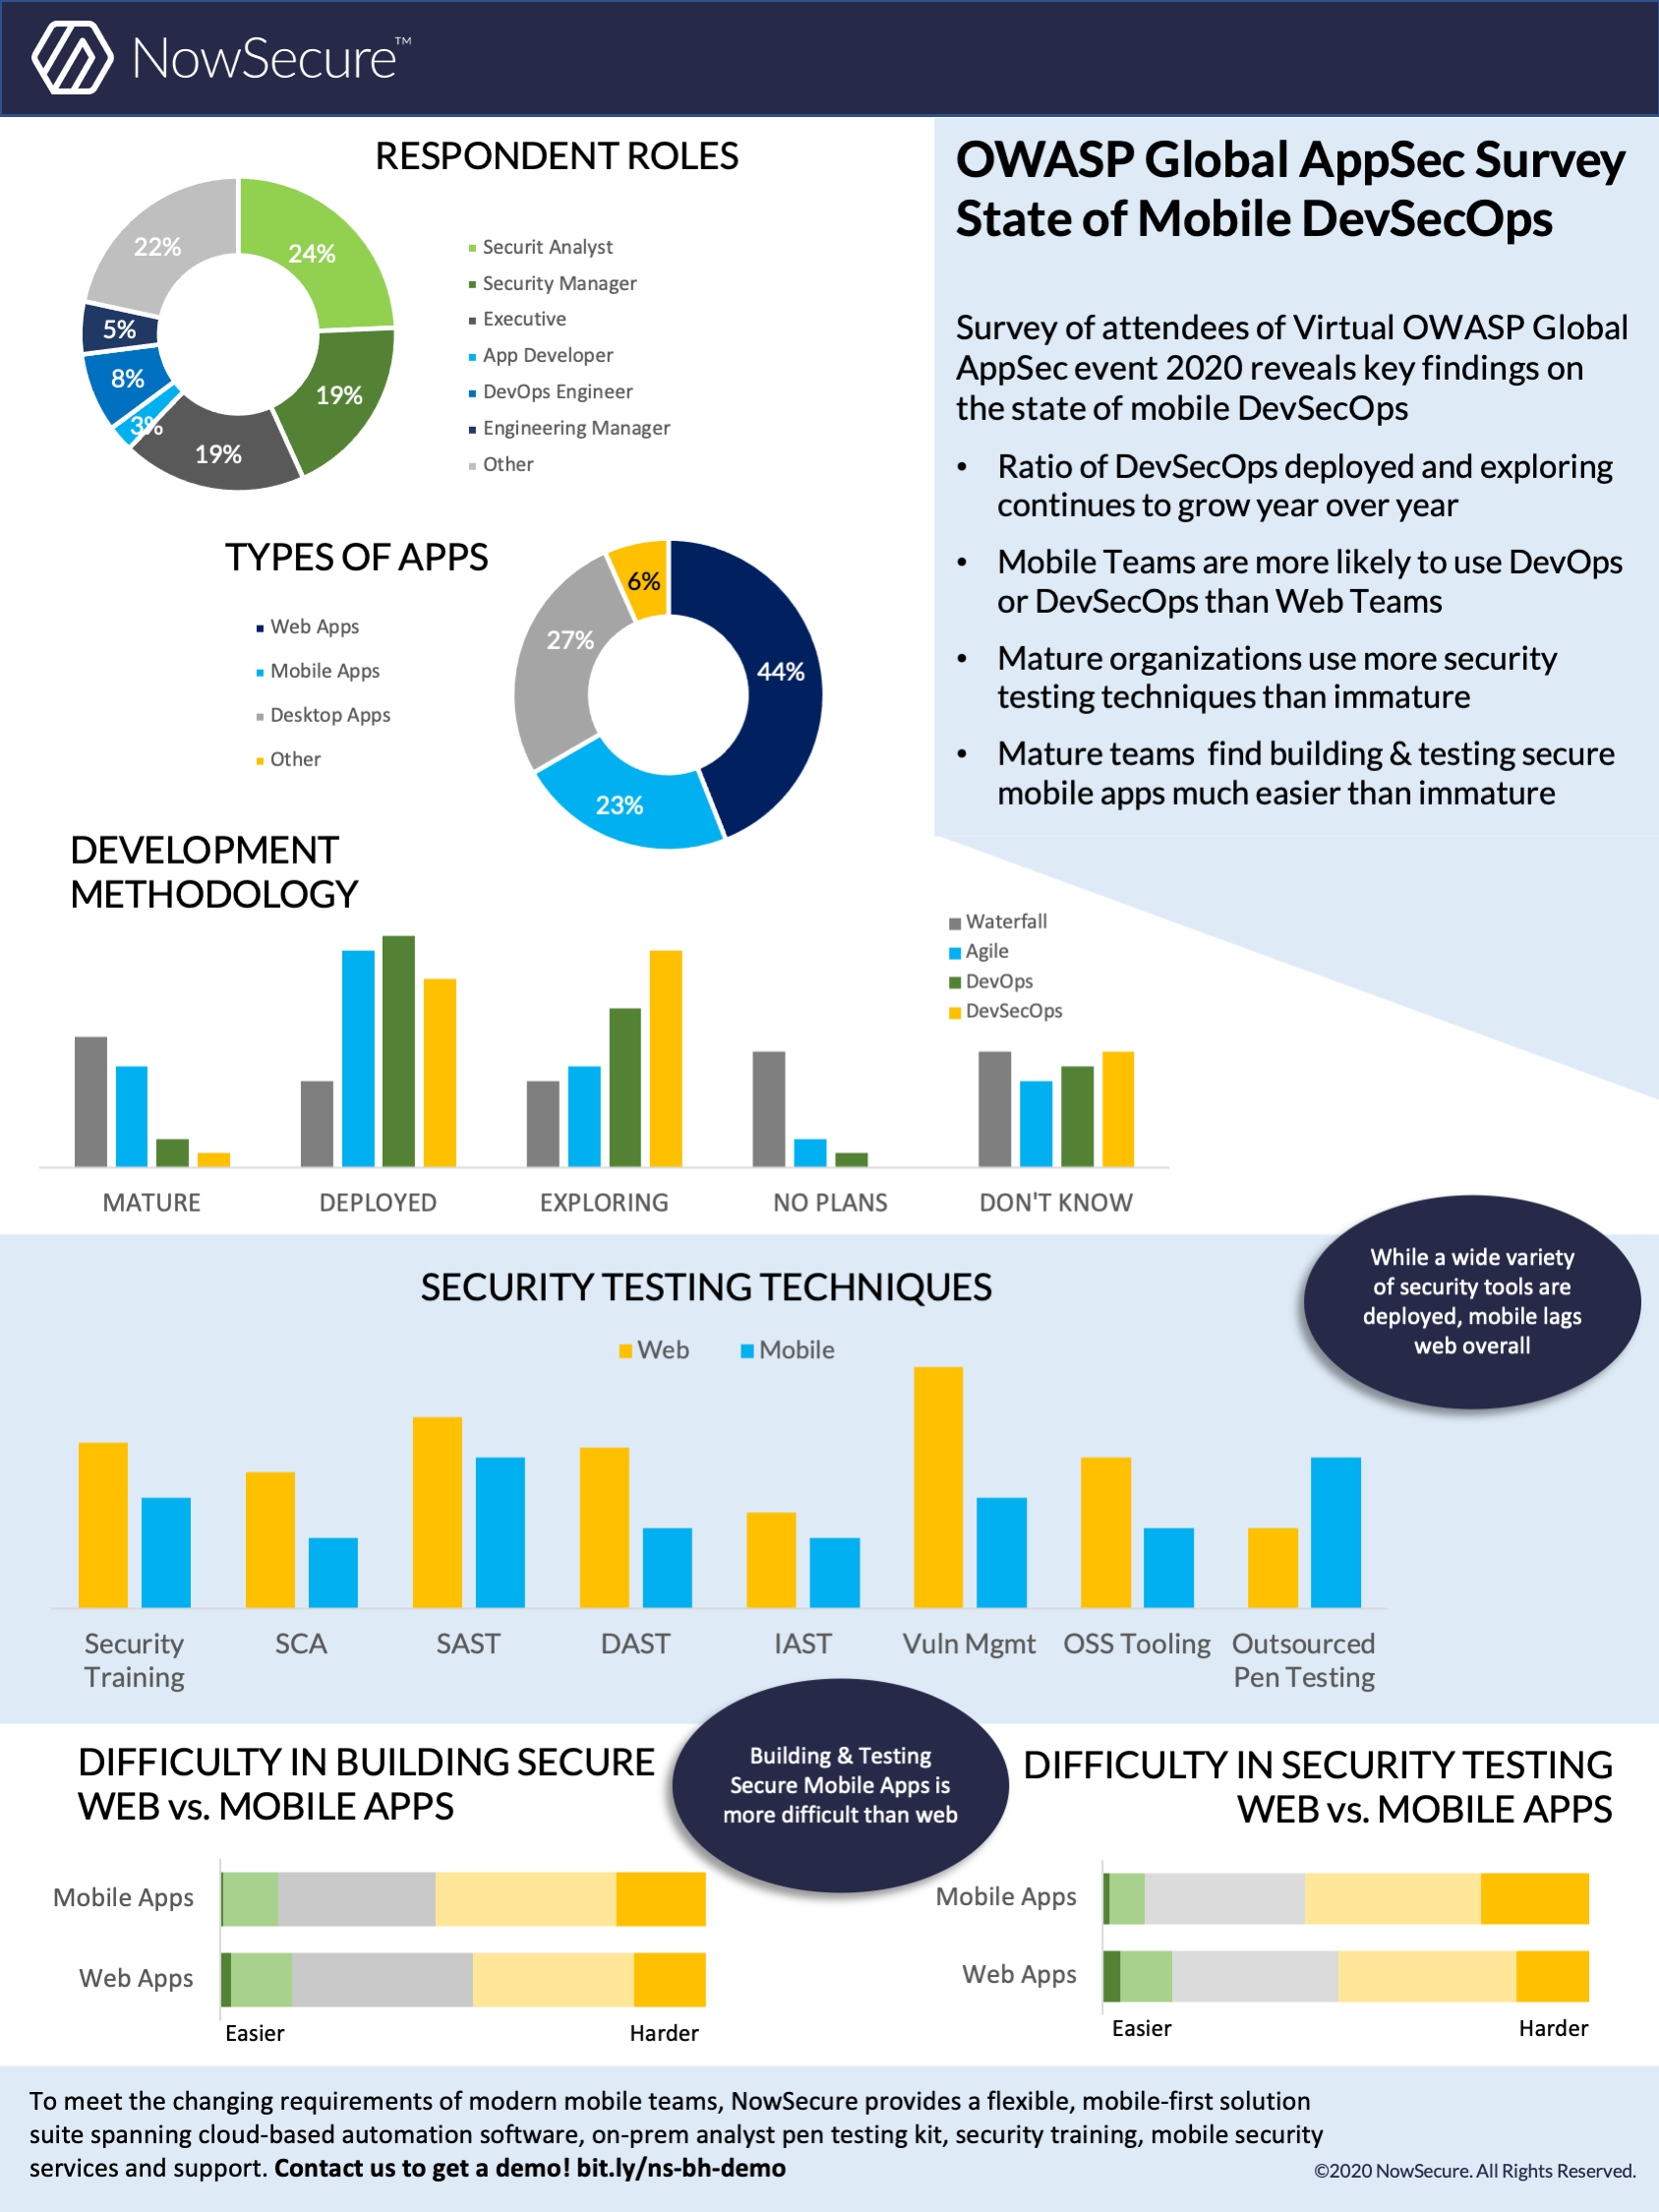 OWASP Global AppSec Survey - State of Mobile DevSecOps